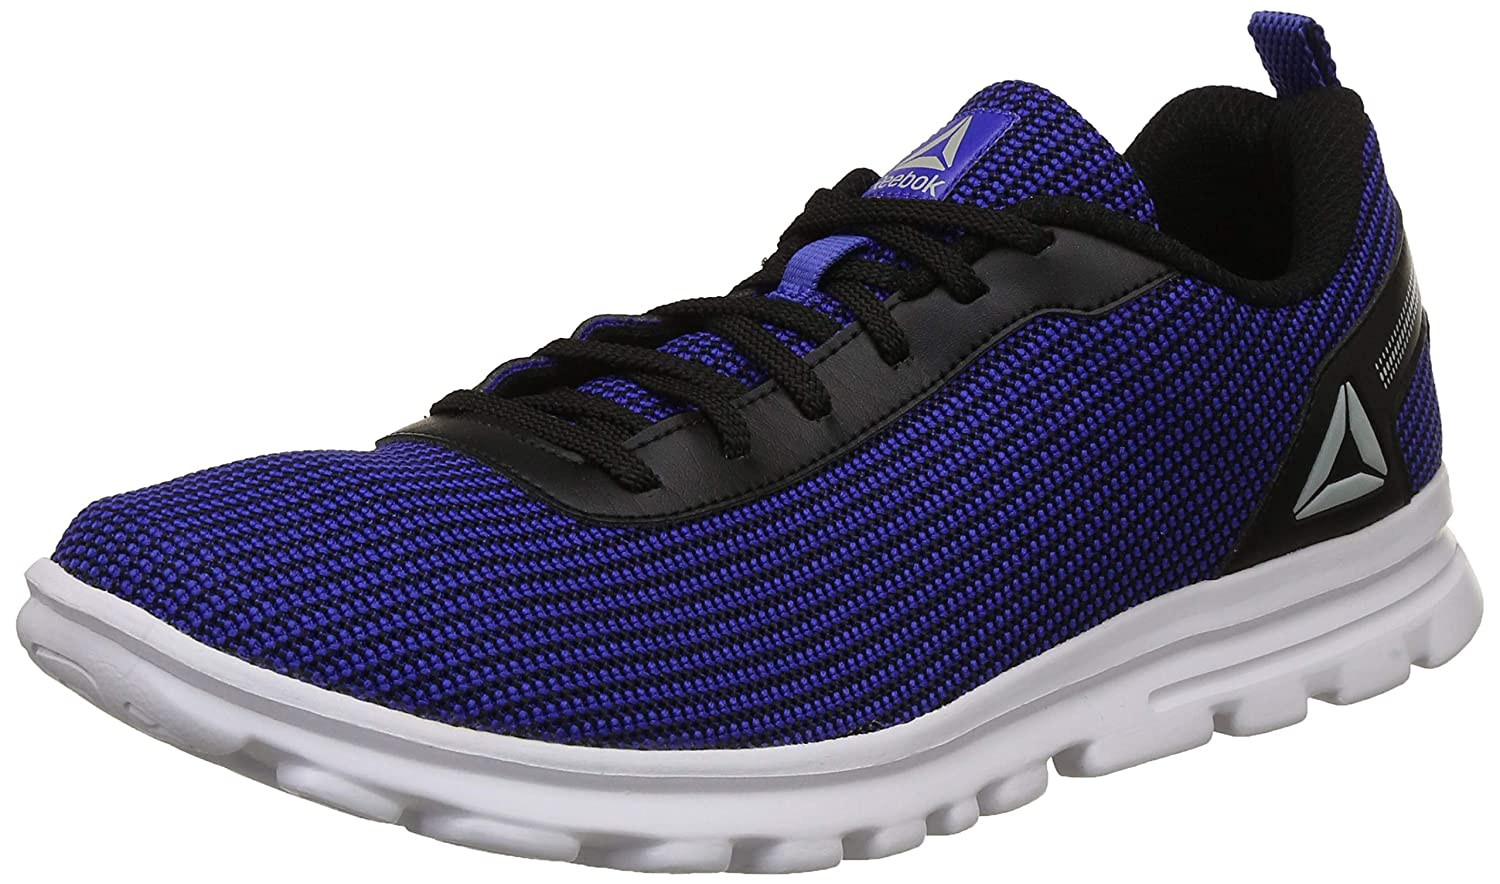 11b50775757277 Reebok Men s Sweep Runner Lp Running Shoes  Buy Online at Low Prices in  India - Amazon.in